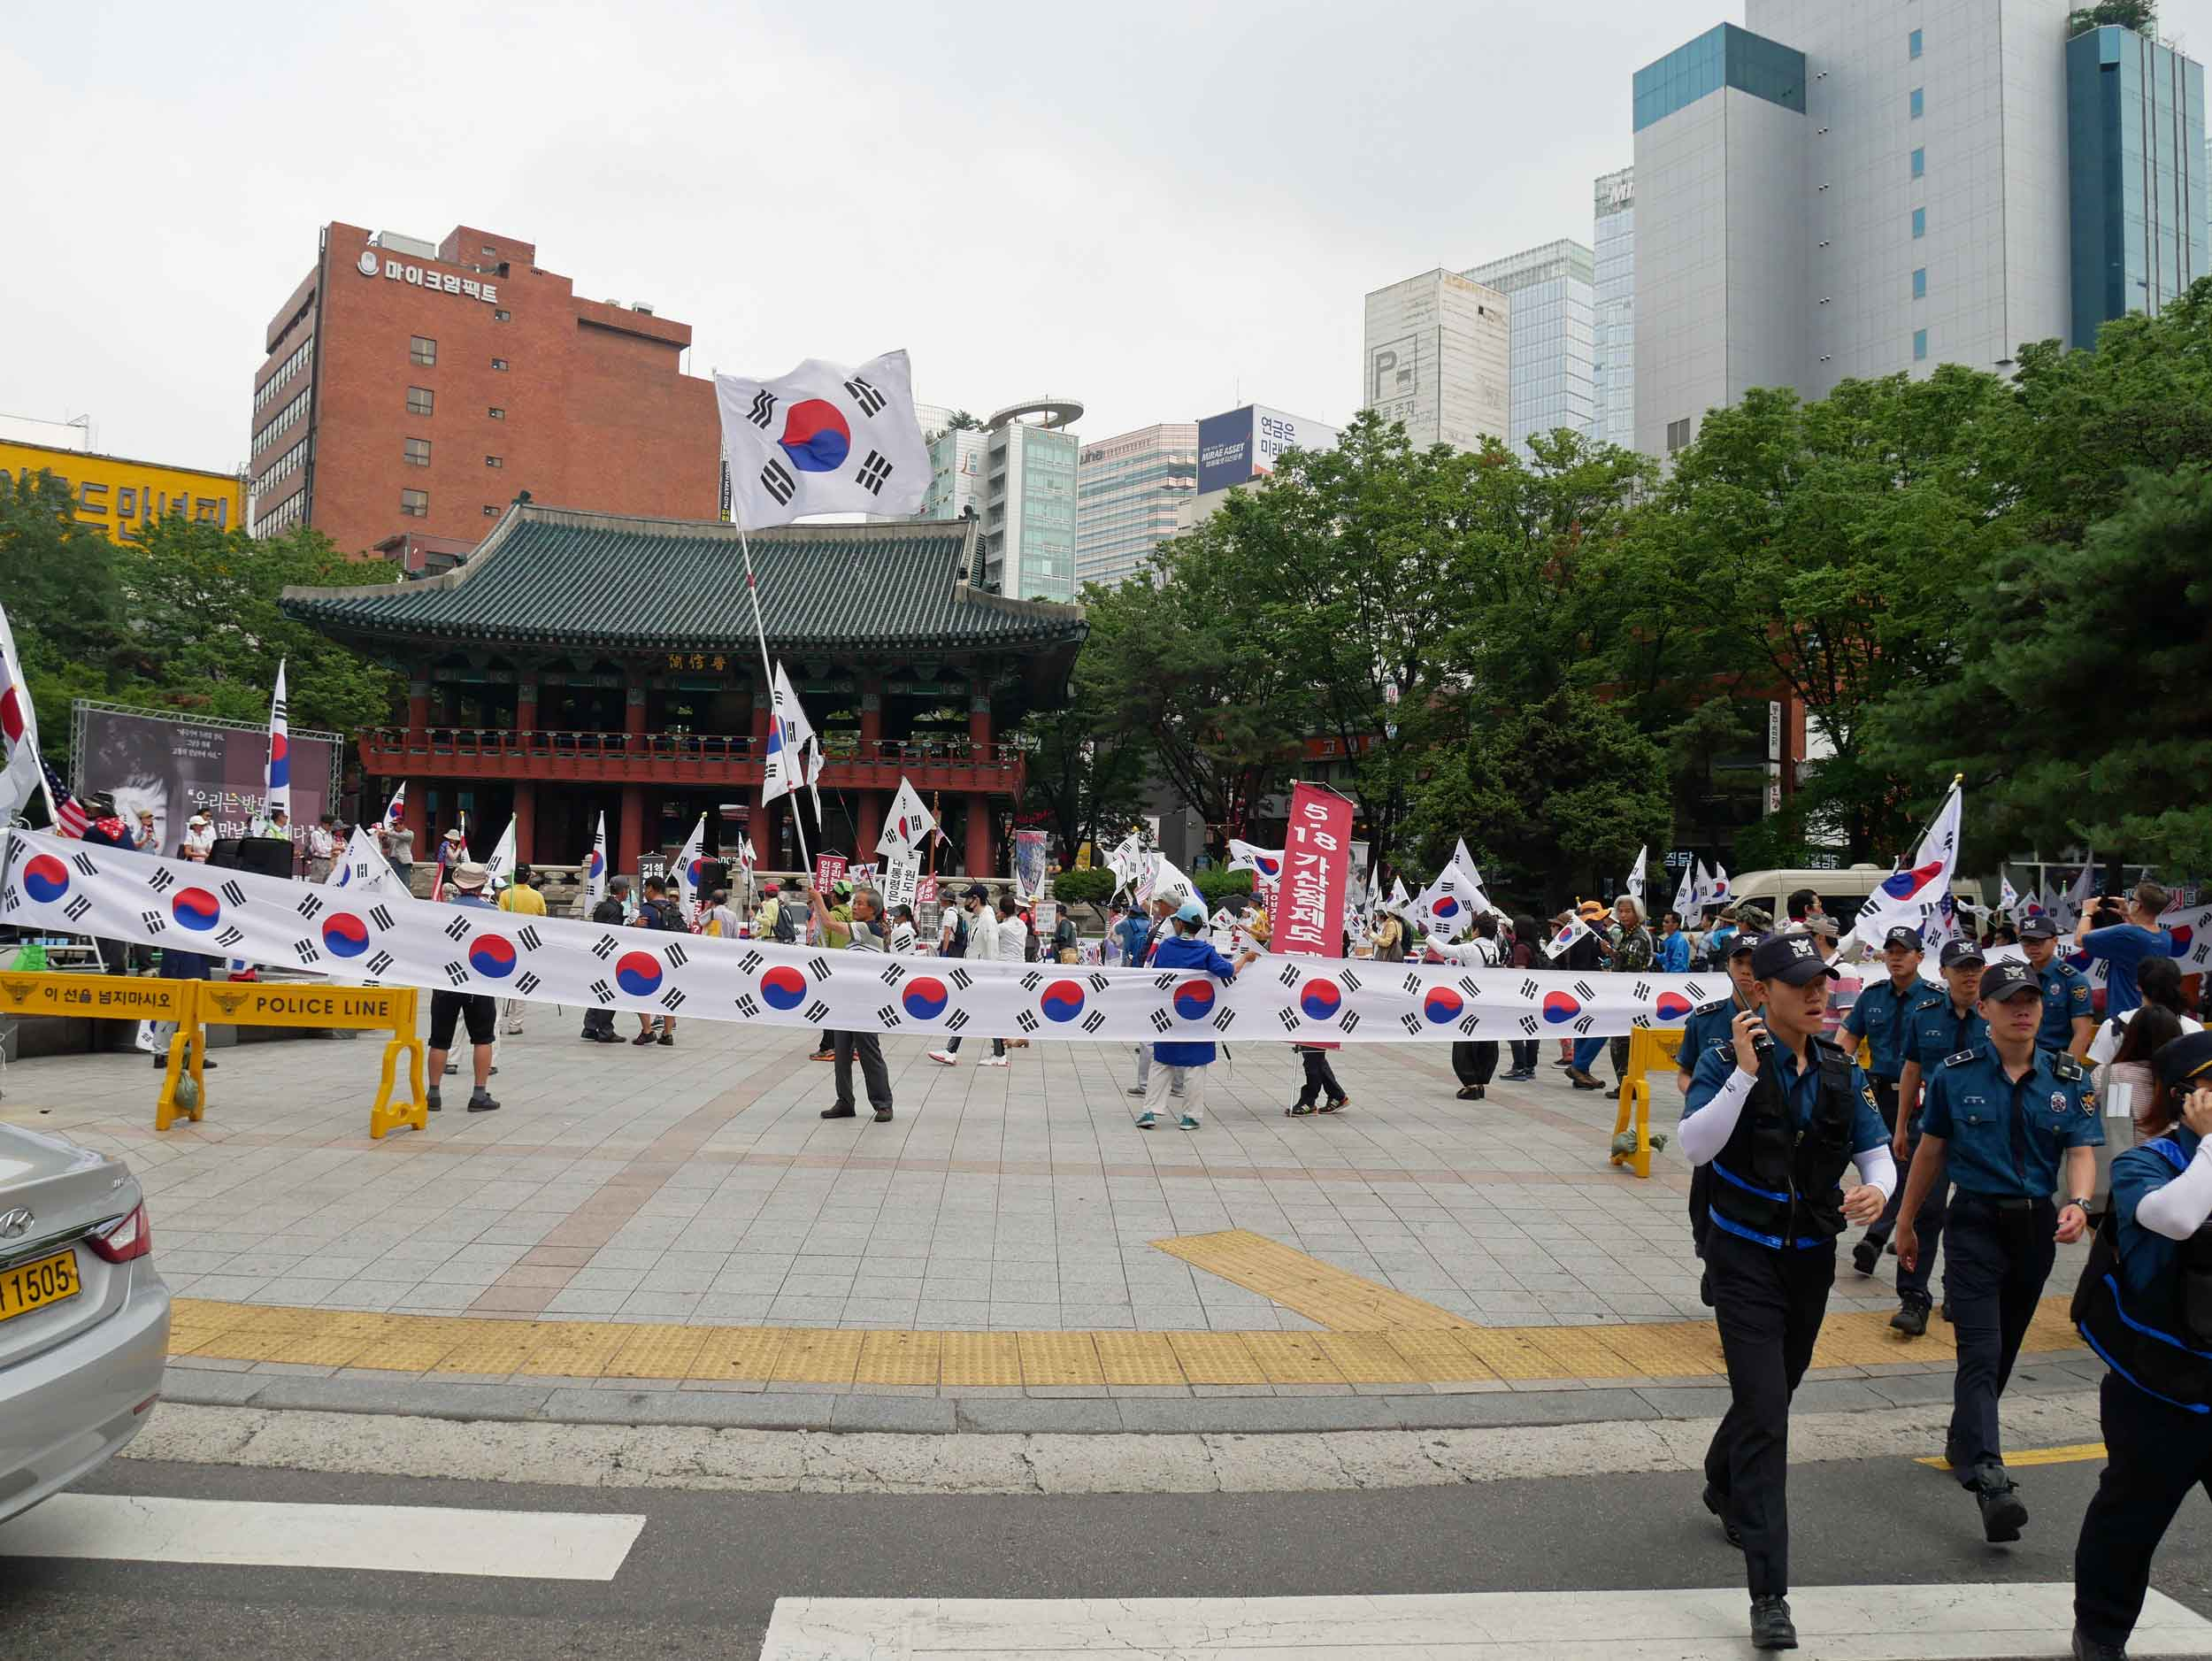 As we walked about the city, we passed a large protest for the release of former South Korean President Park Geun-hye who's on trial for corruption.